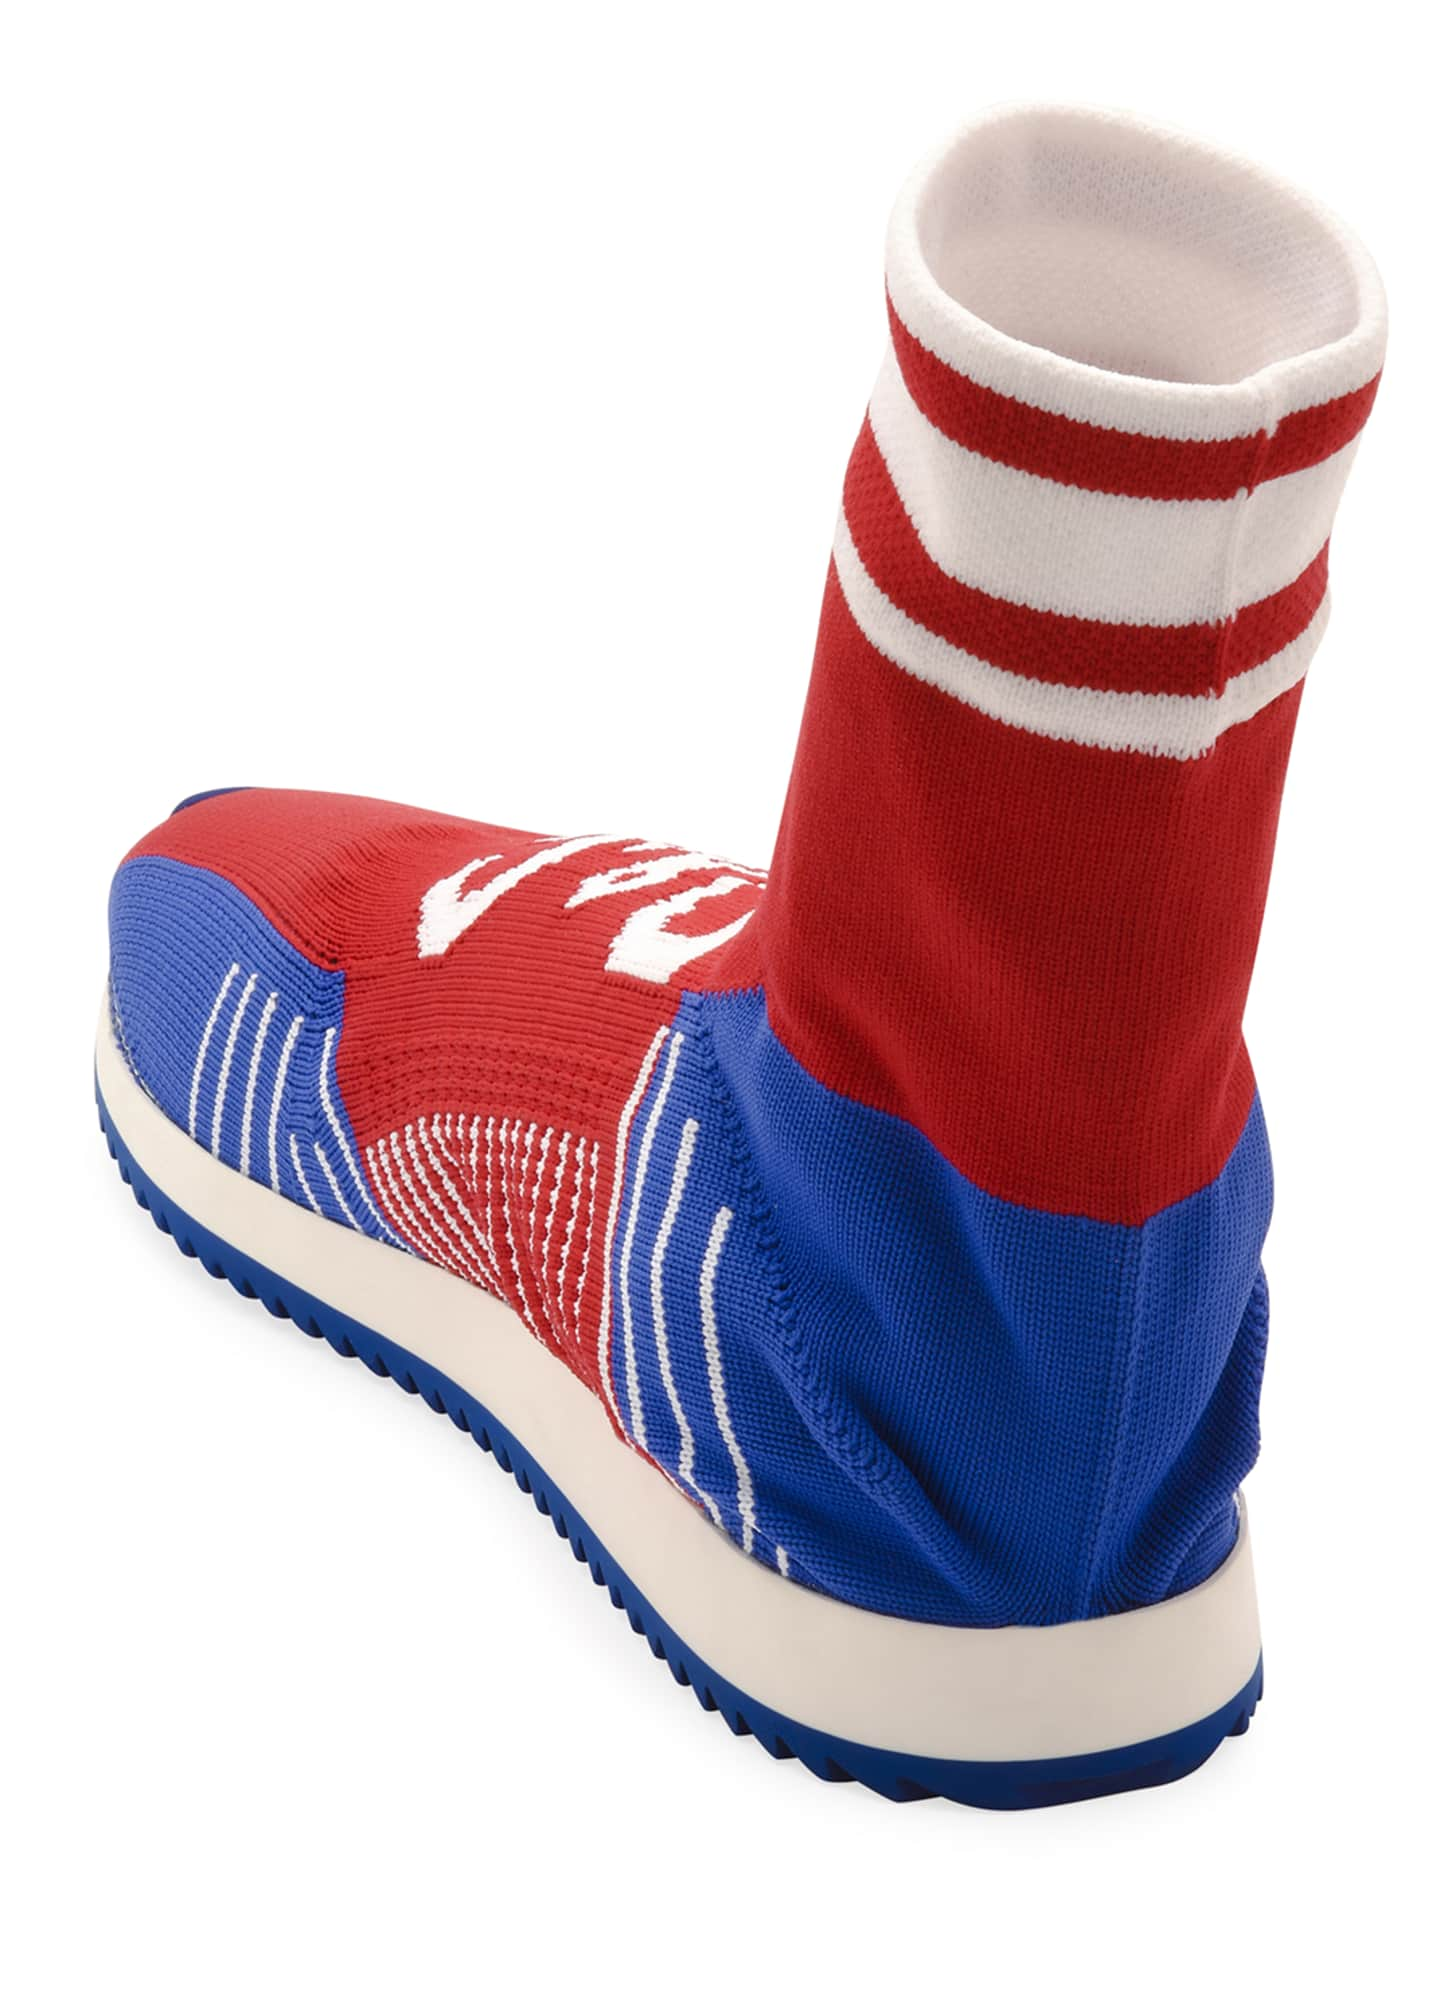 Image 3 of 3: Men's Sorrento Sock Soccer Sneakers